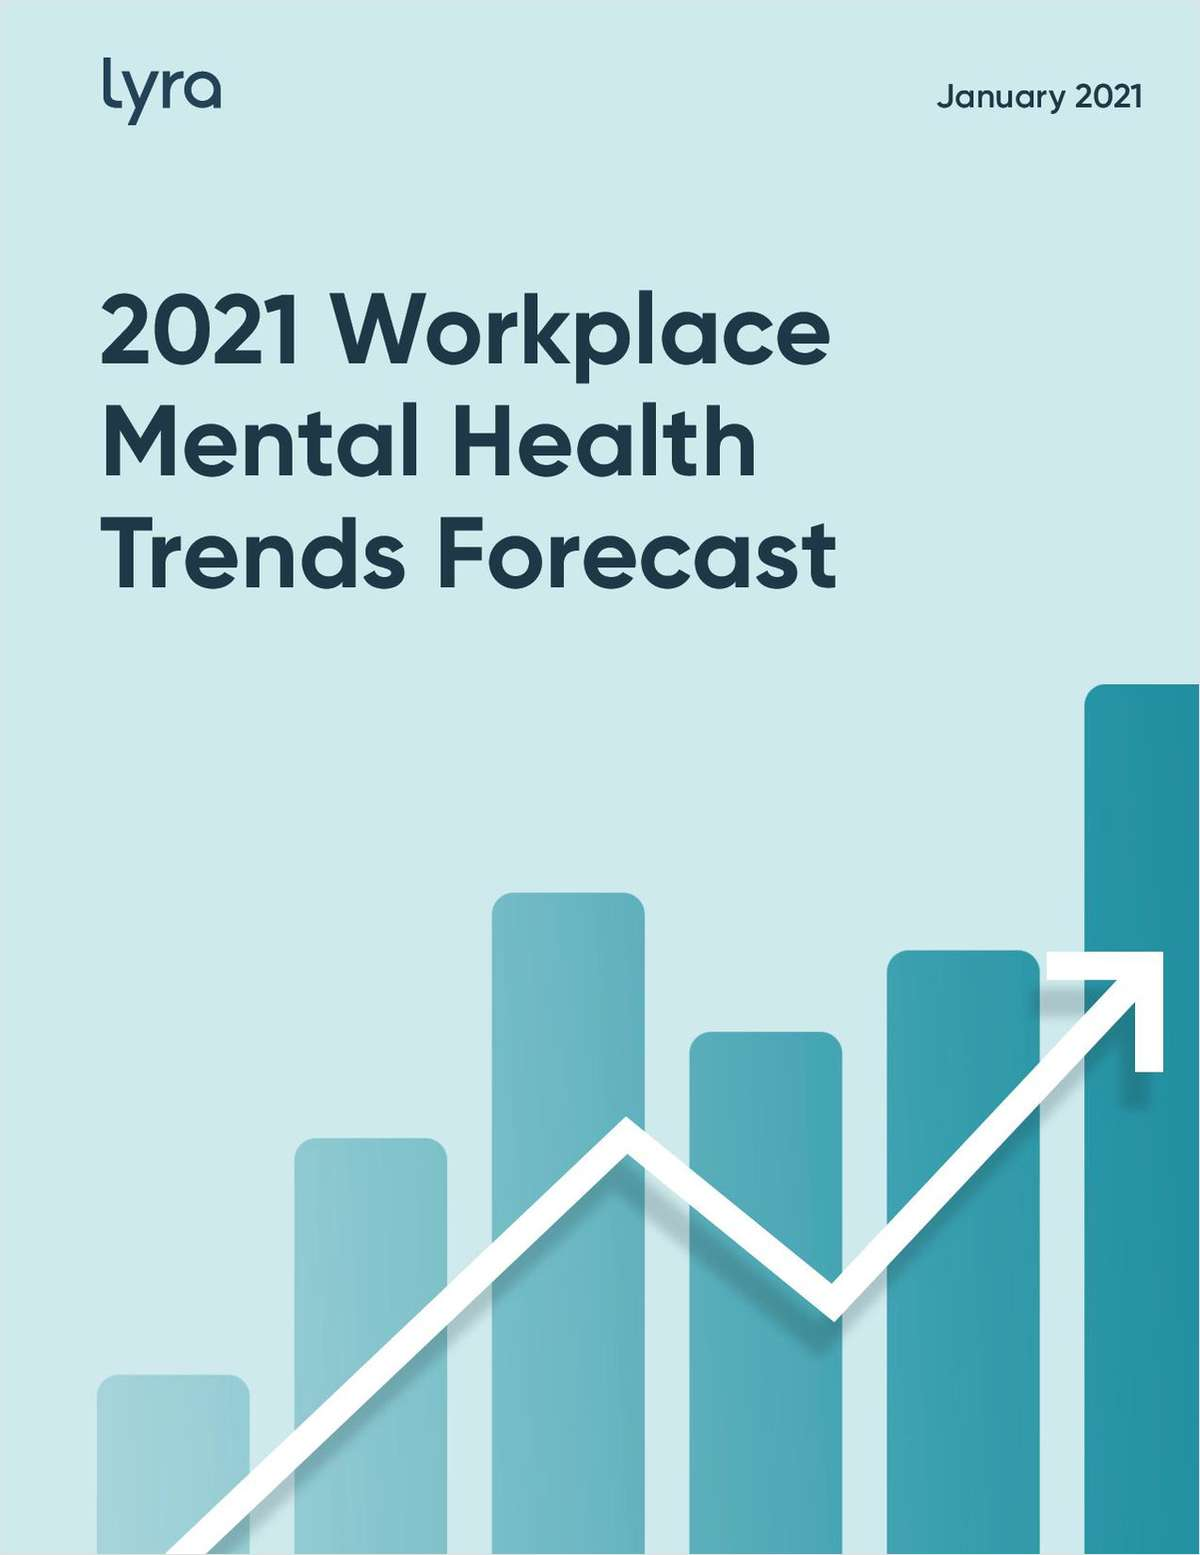 2021 Workplace Mental Health Trends Forecast